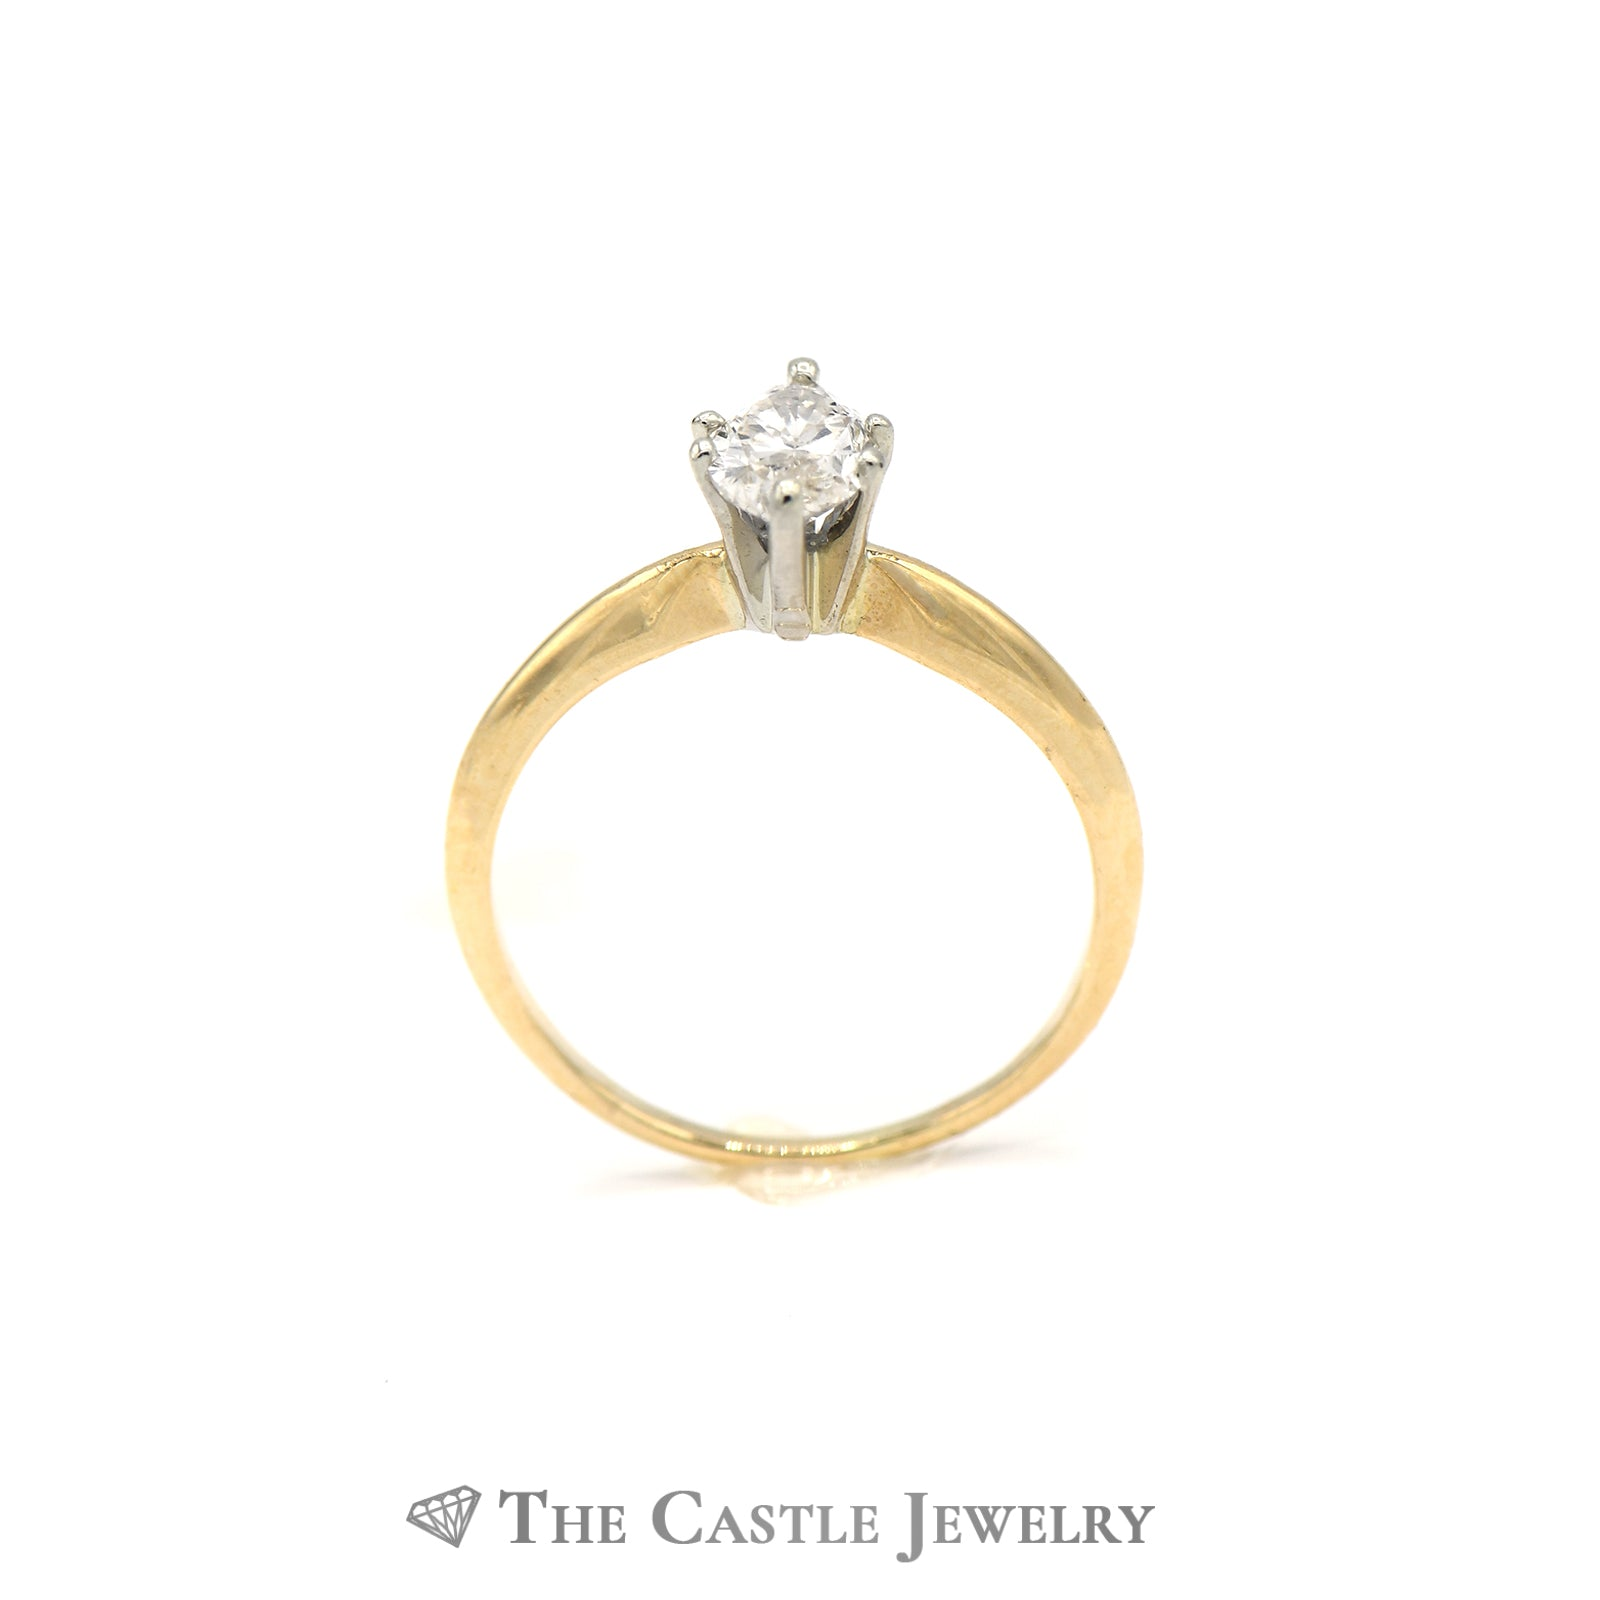 Marquise Solitaire 1/2 carat Diamond Ring in 14KT Yellow Gold-1